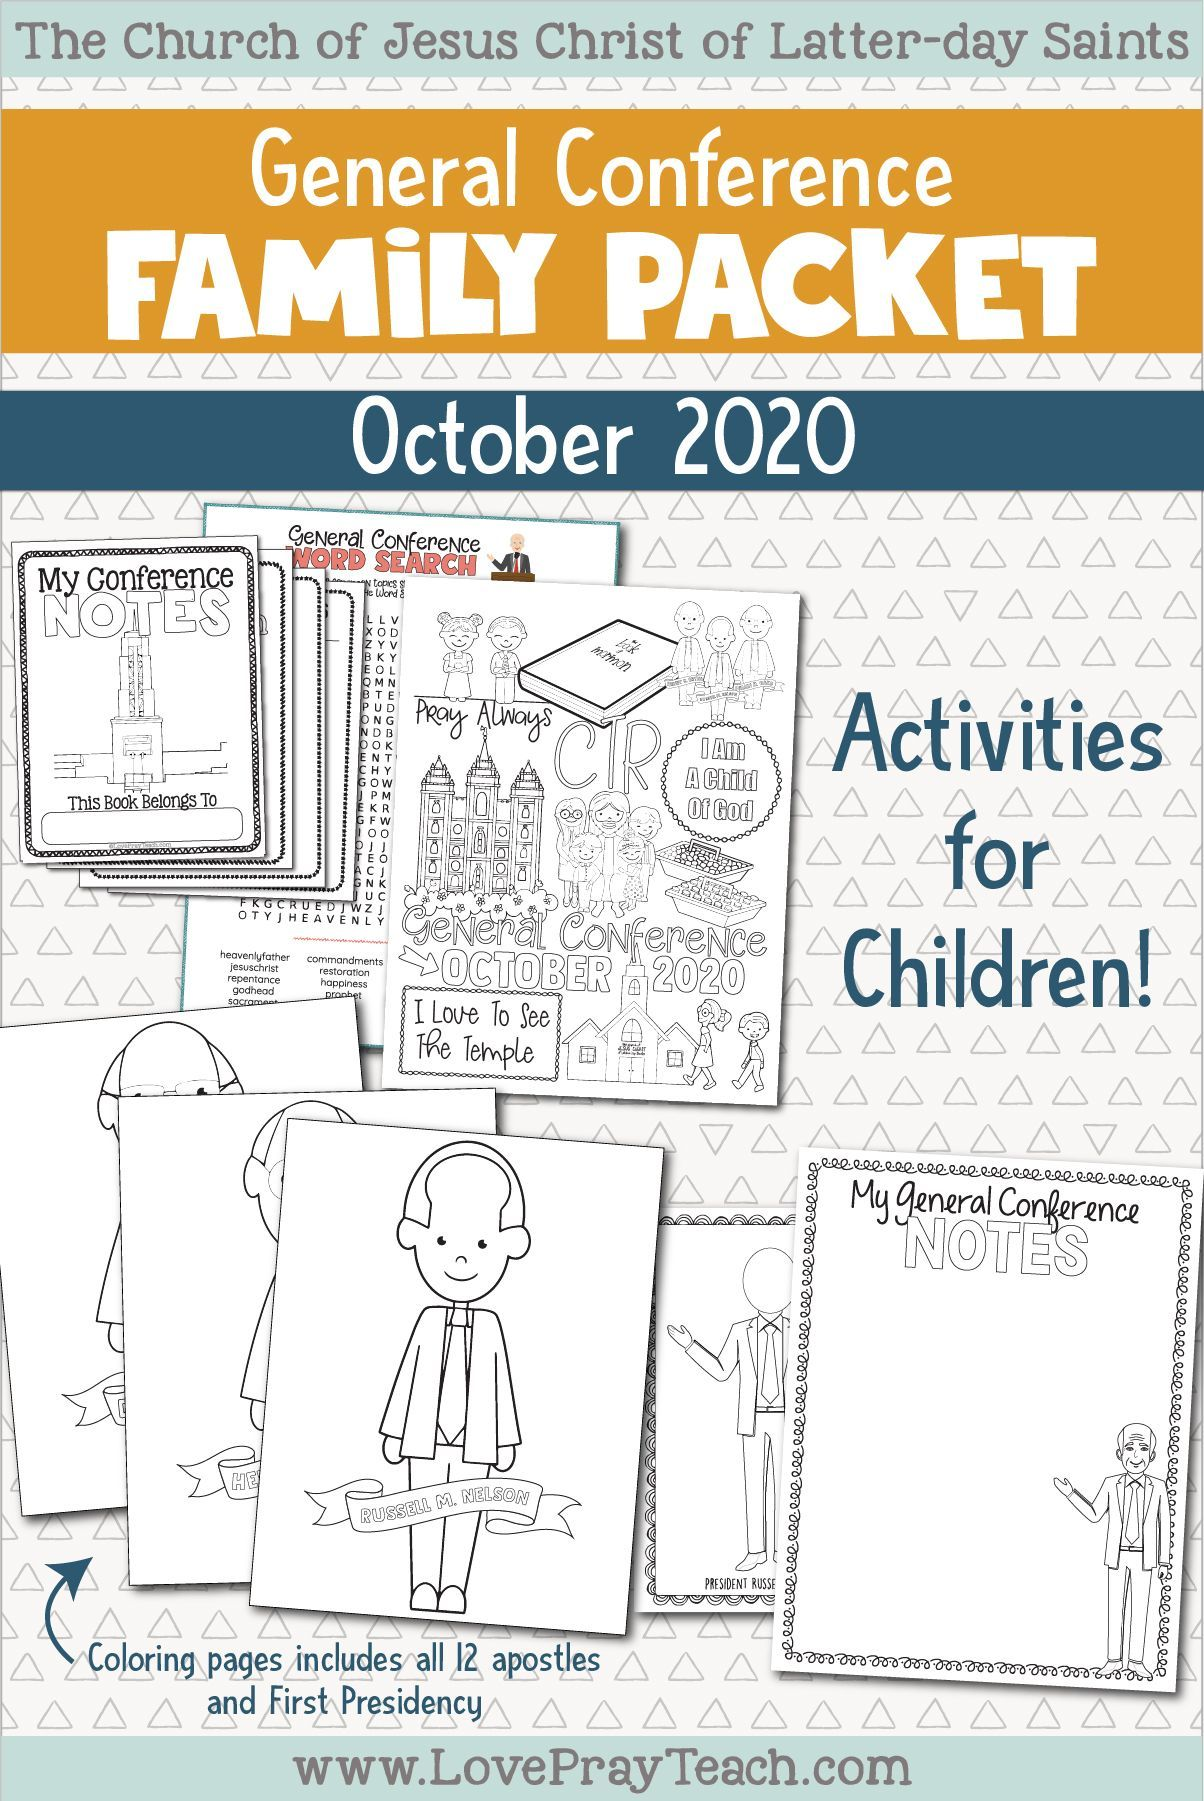 General Conference Family Packet In 2020 General Conference Activities General Conference General Conference Notes